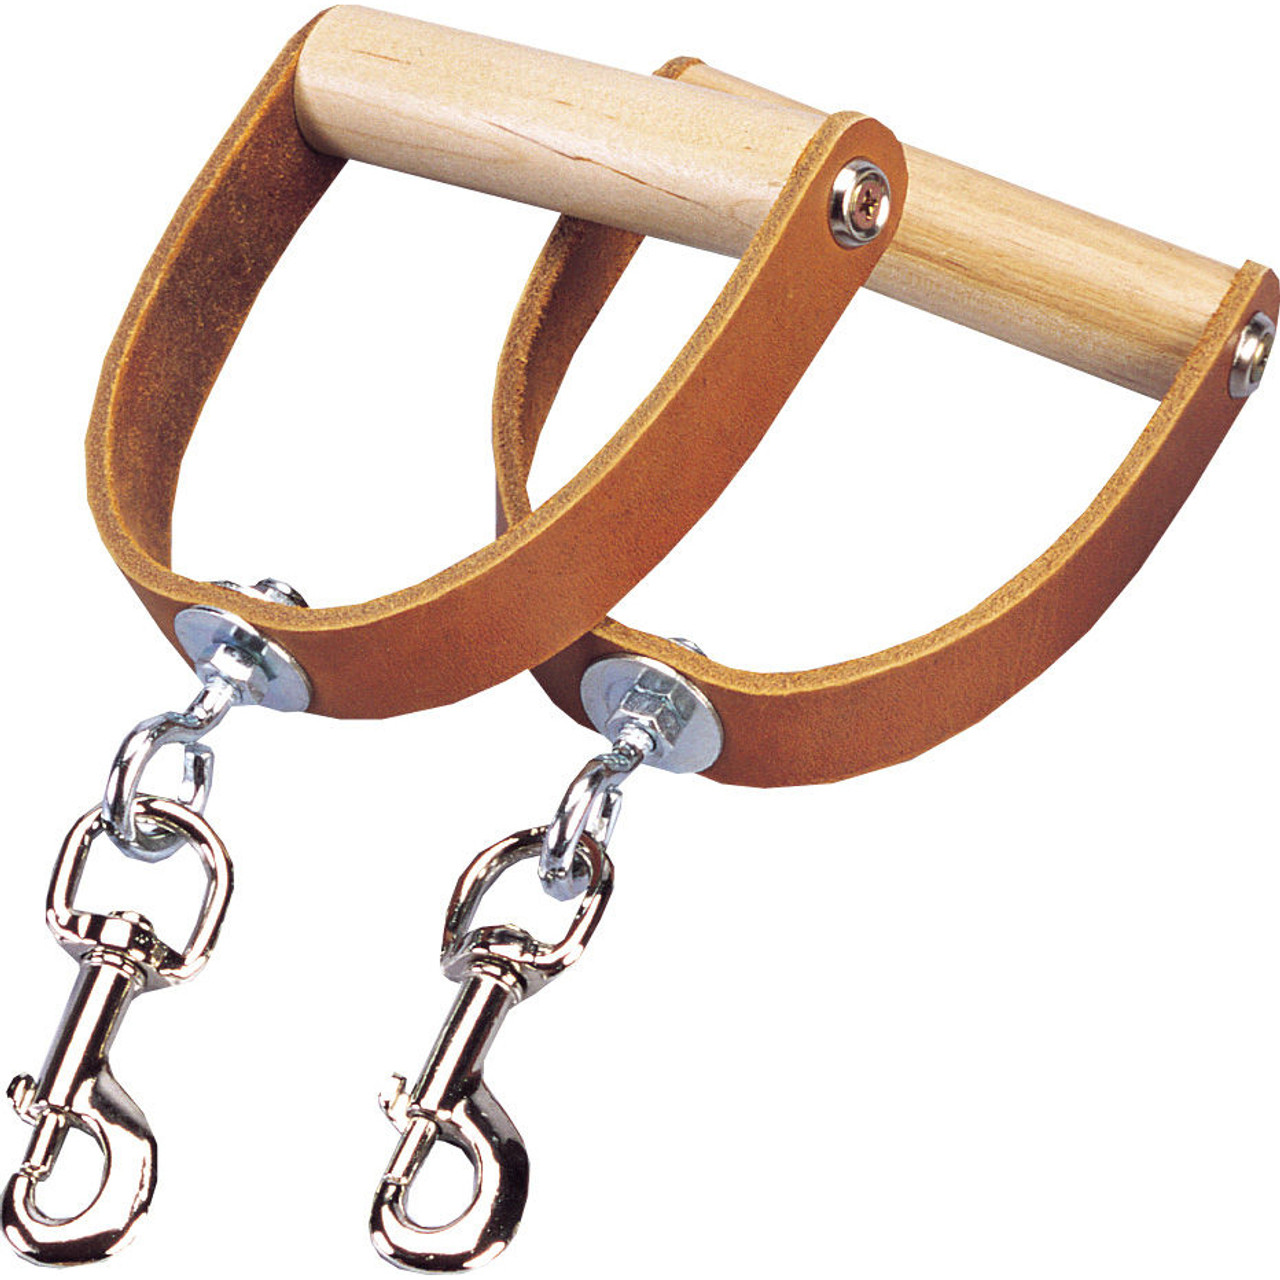 Premium Leather Swivel Handles (Pair)